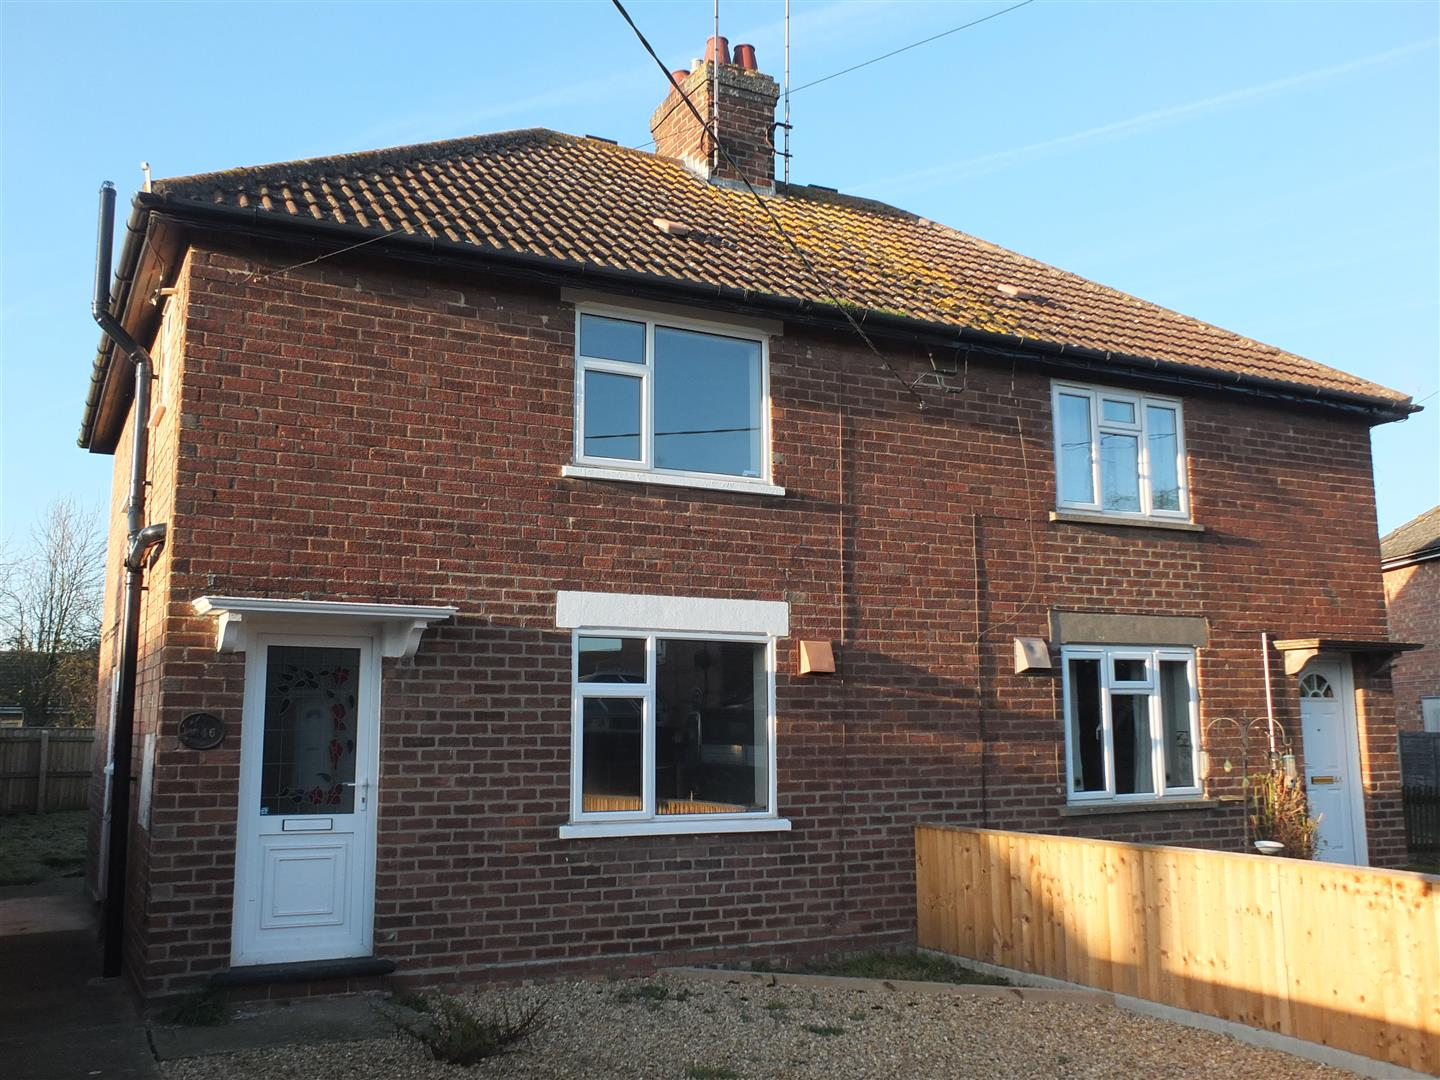 3 bed semi-detached house to rent in Long Sutton Spalding, PE12 9BT, PE12